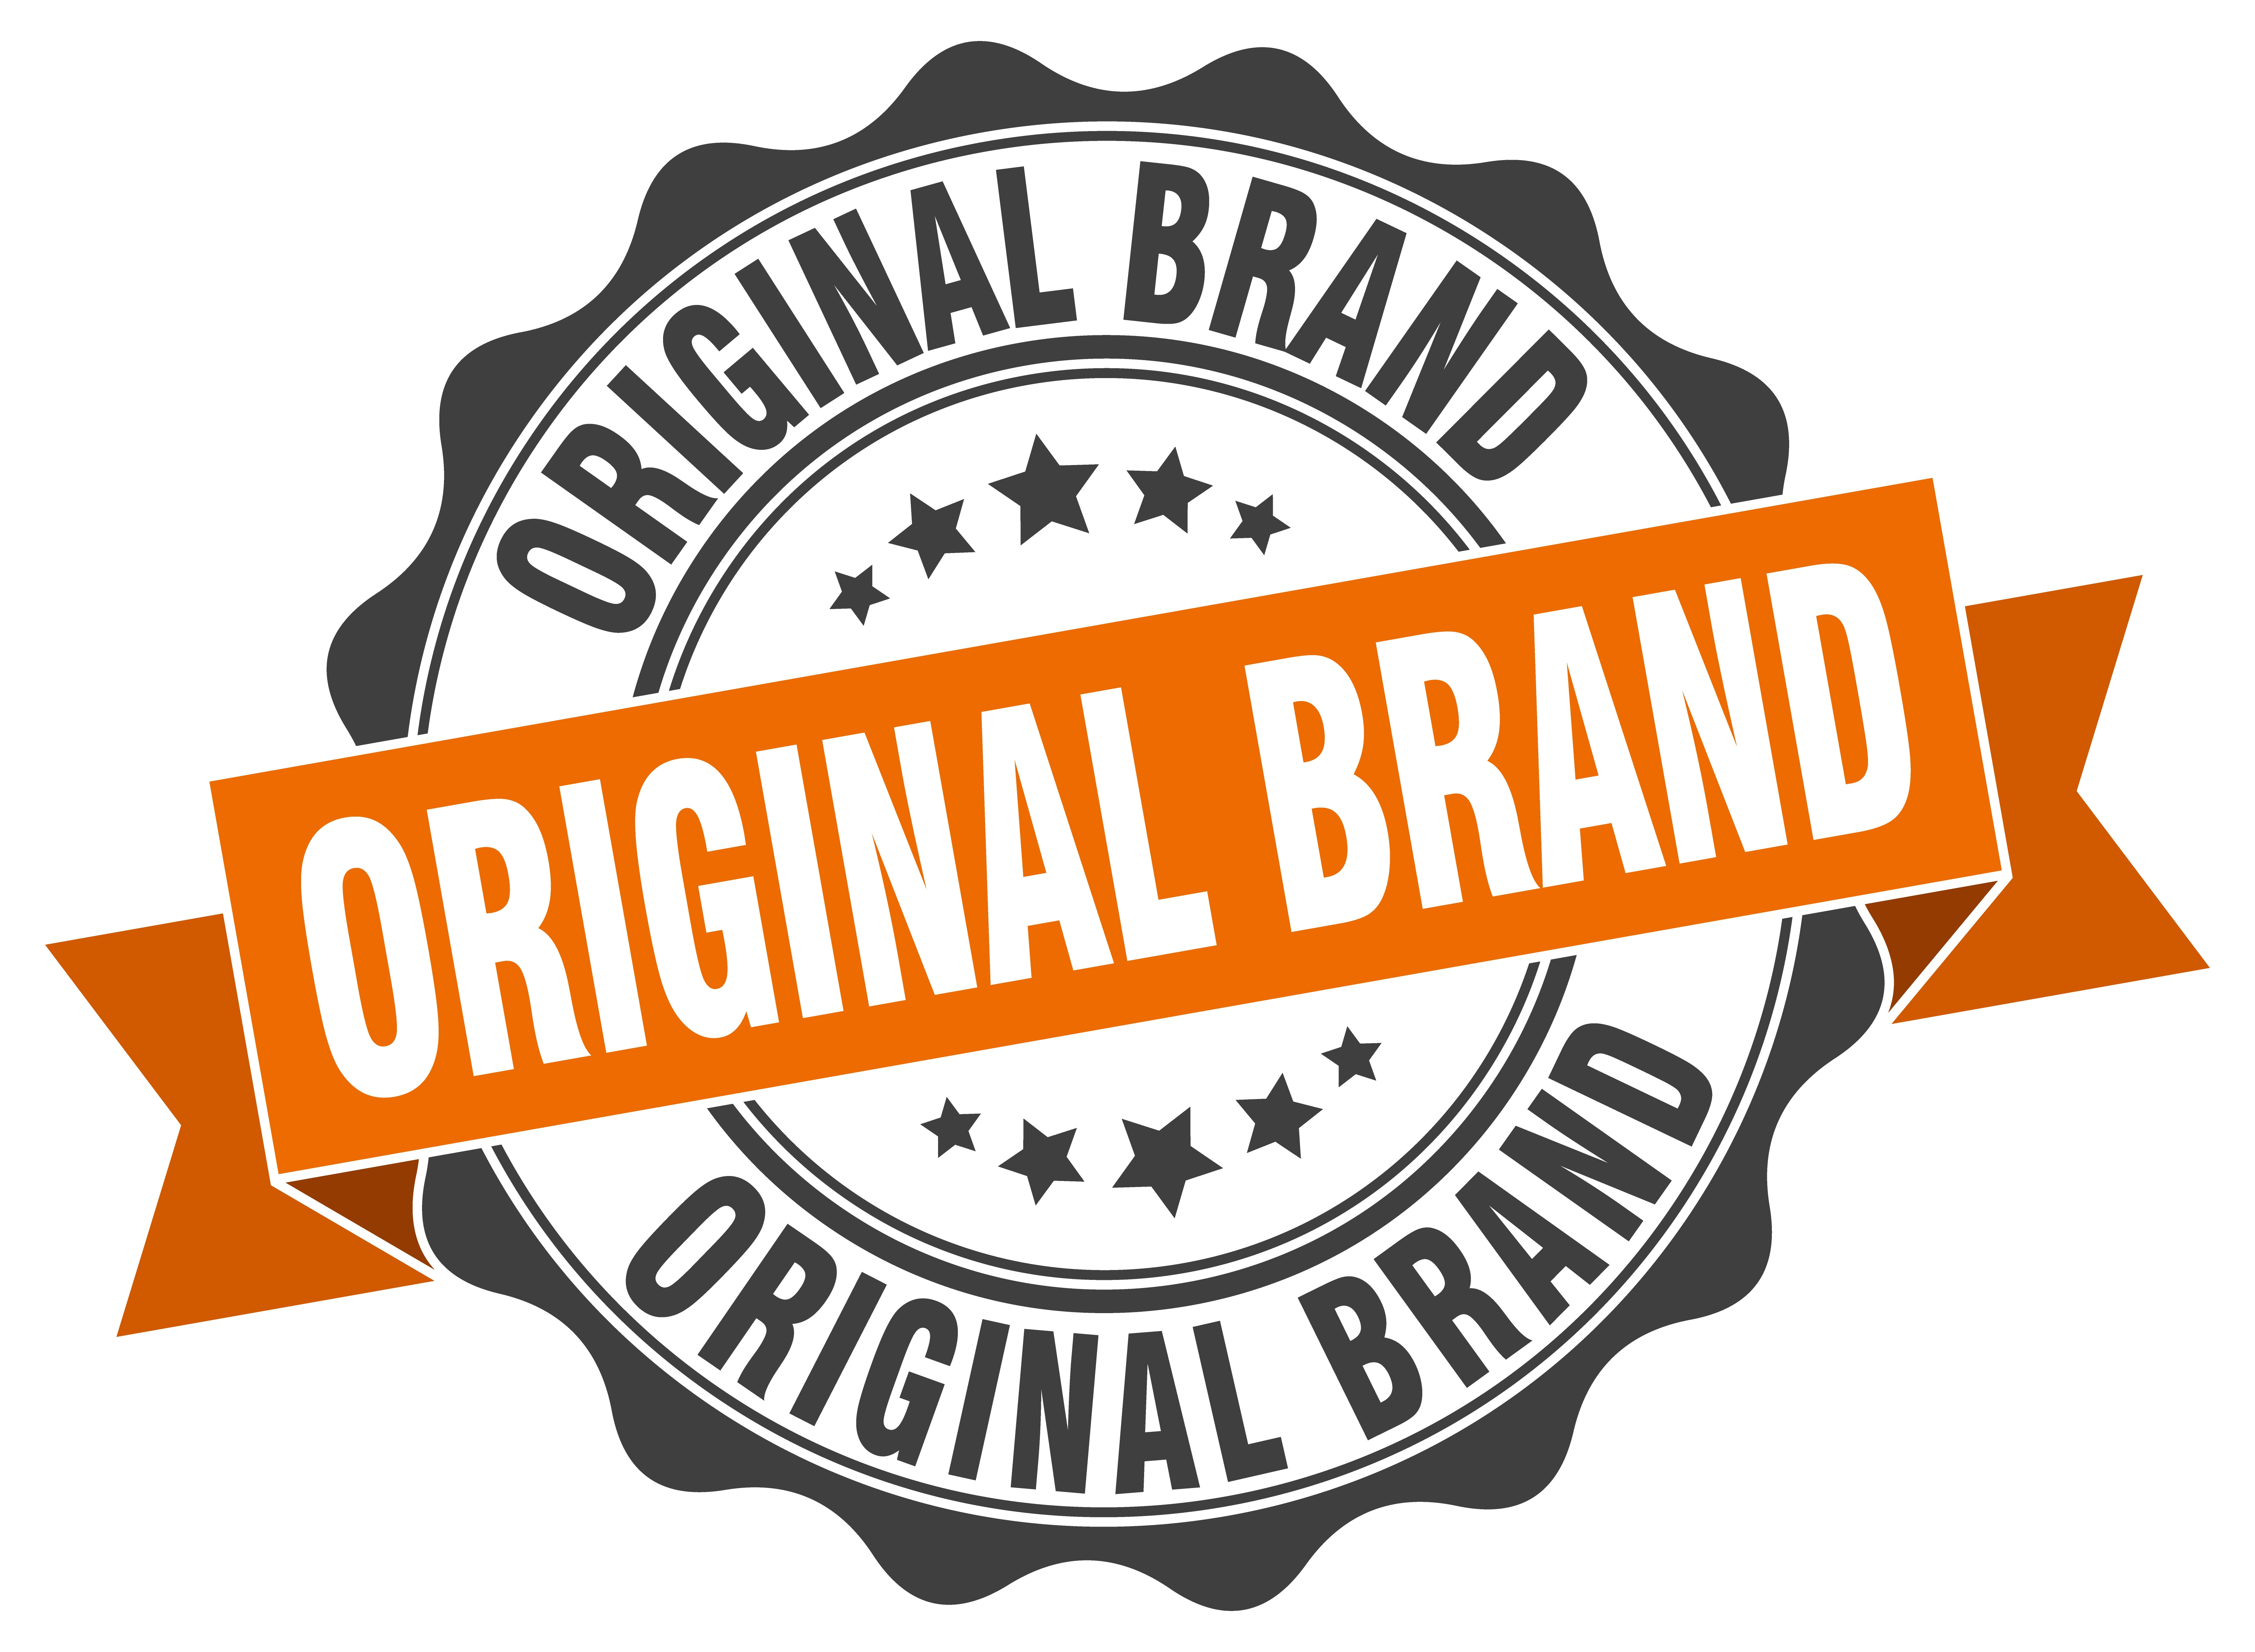 A circular sign that repeats the words 'Original Brand' three times. The words are written in gray and white, an orange banner flies across the center, there are two groupings of gray stars.